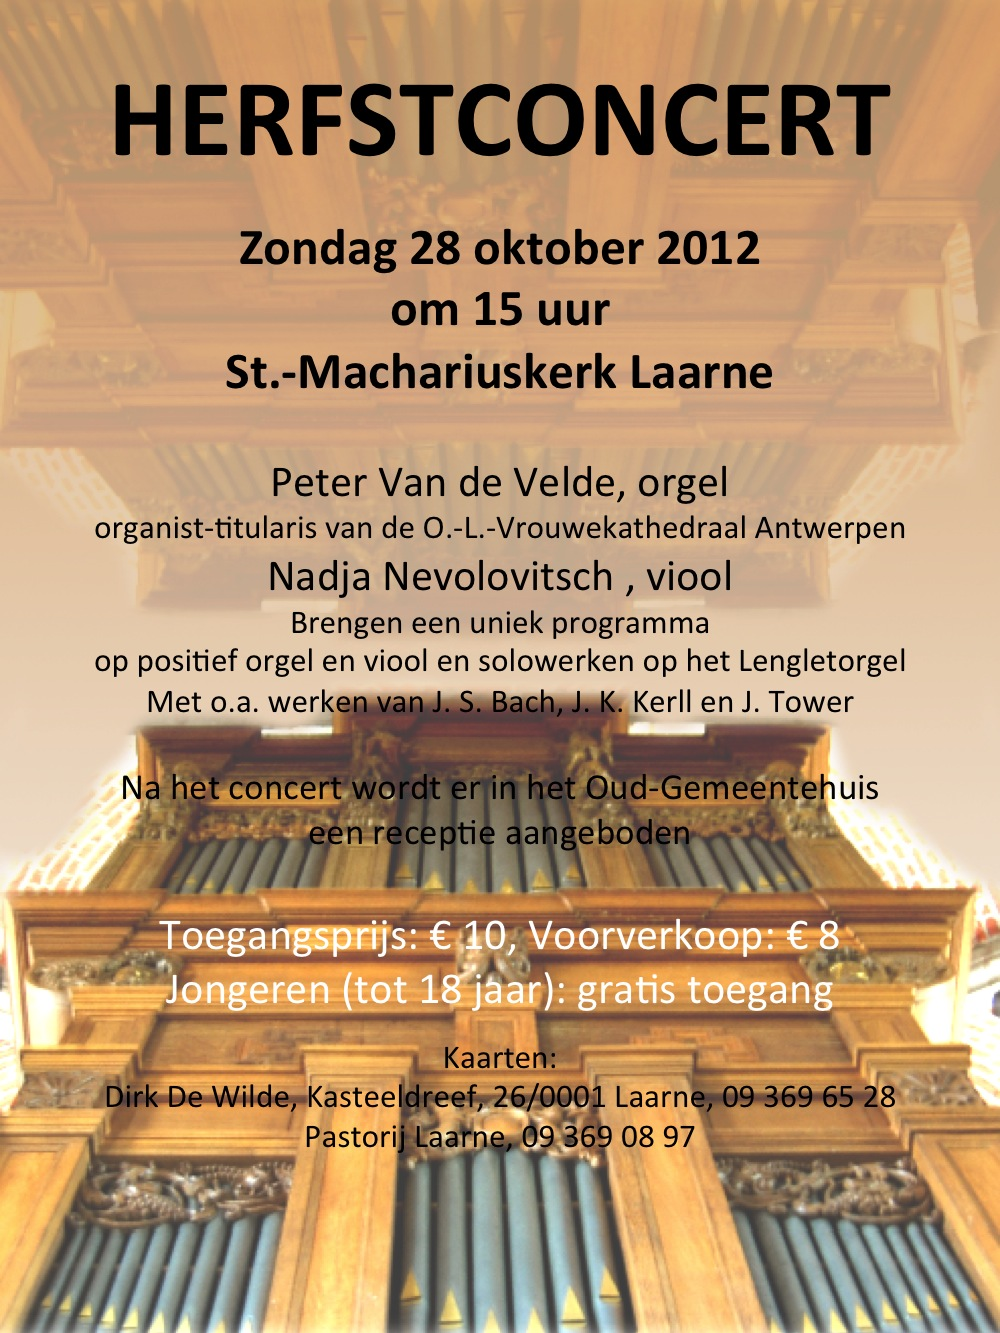 poster announcing the benefit concert in Laarne, Belgium